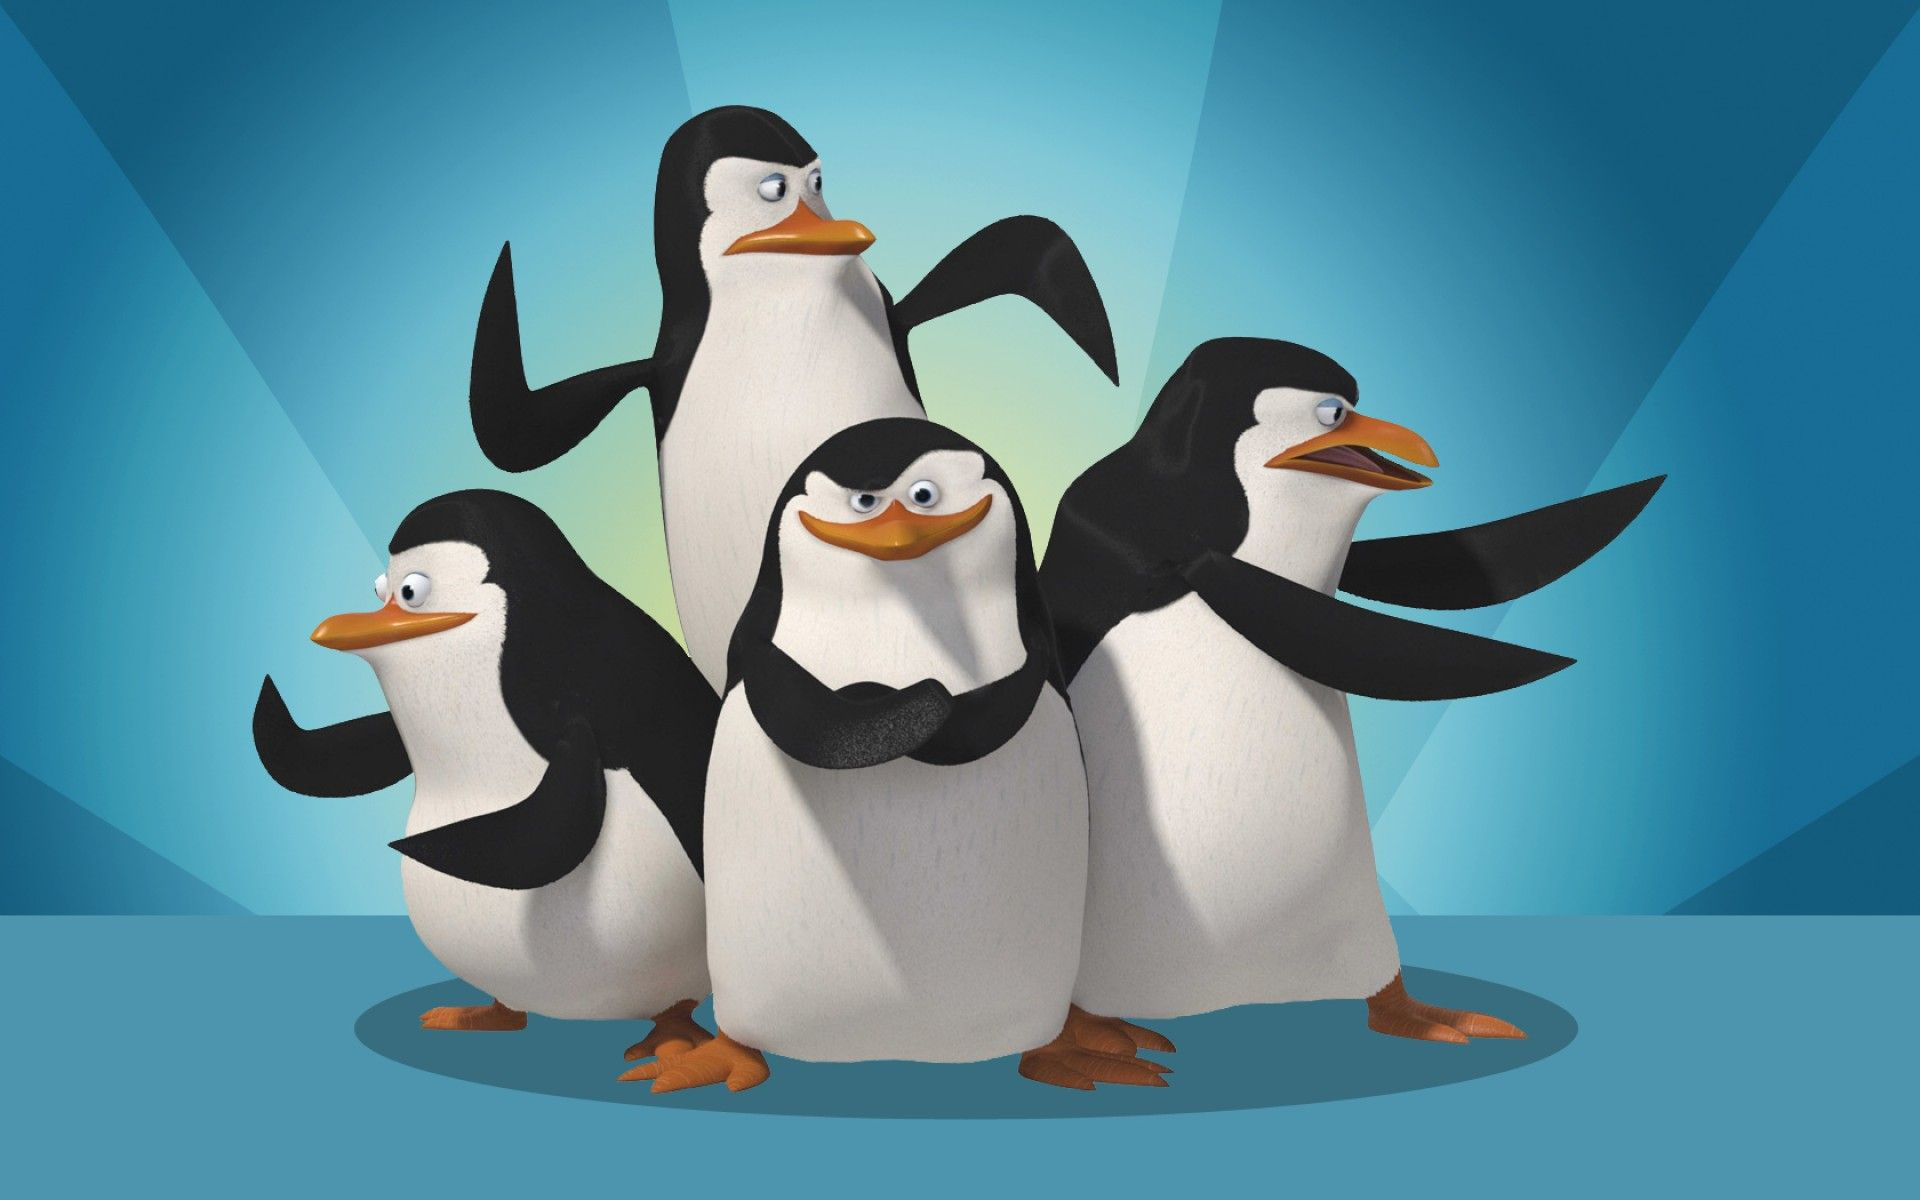 madagascar penguins | movies etc with a soldier named kowalski